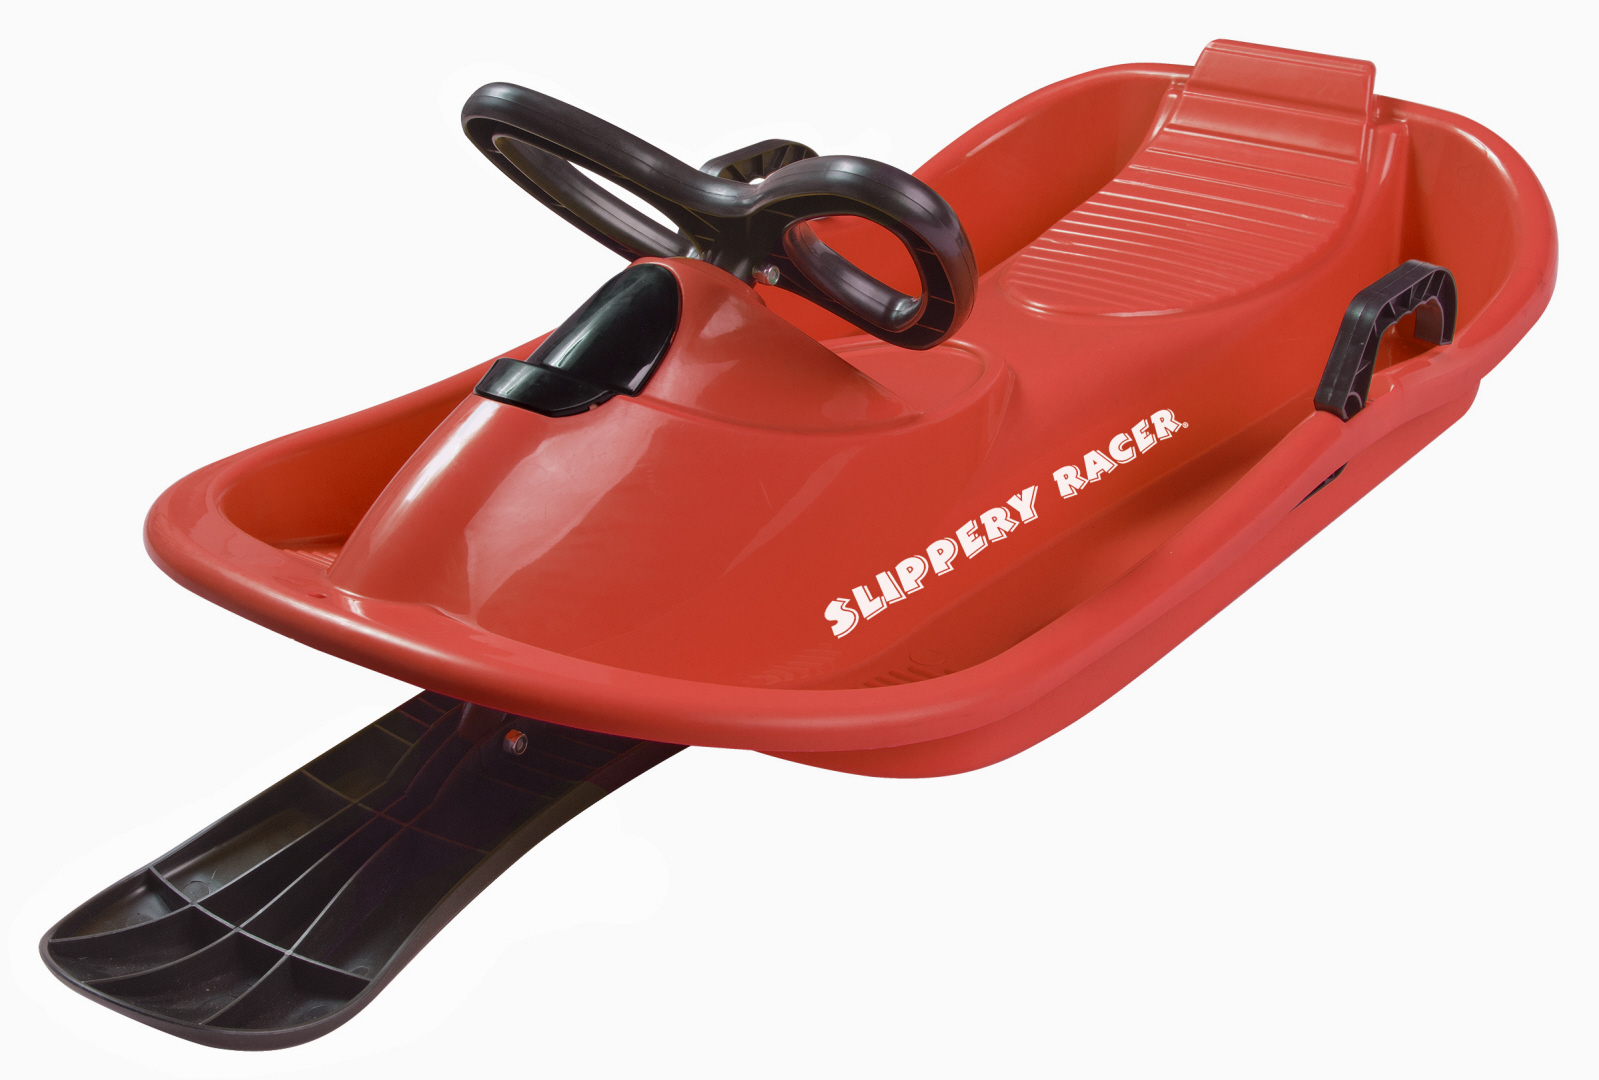 Slippery Racer Downhill Debry Kids Snow Sled by Slippery Racer